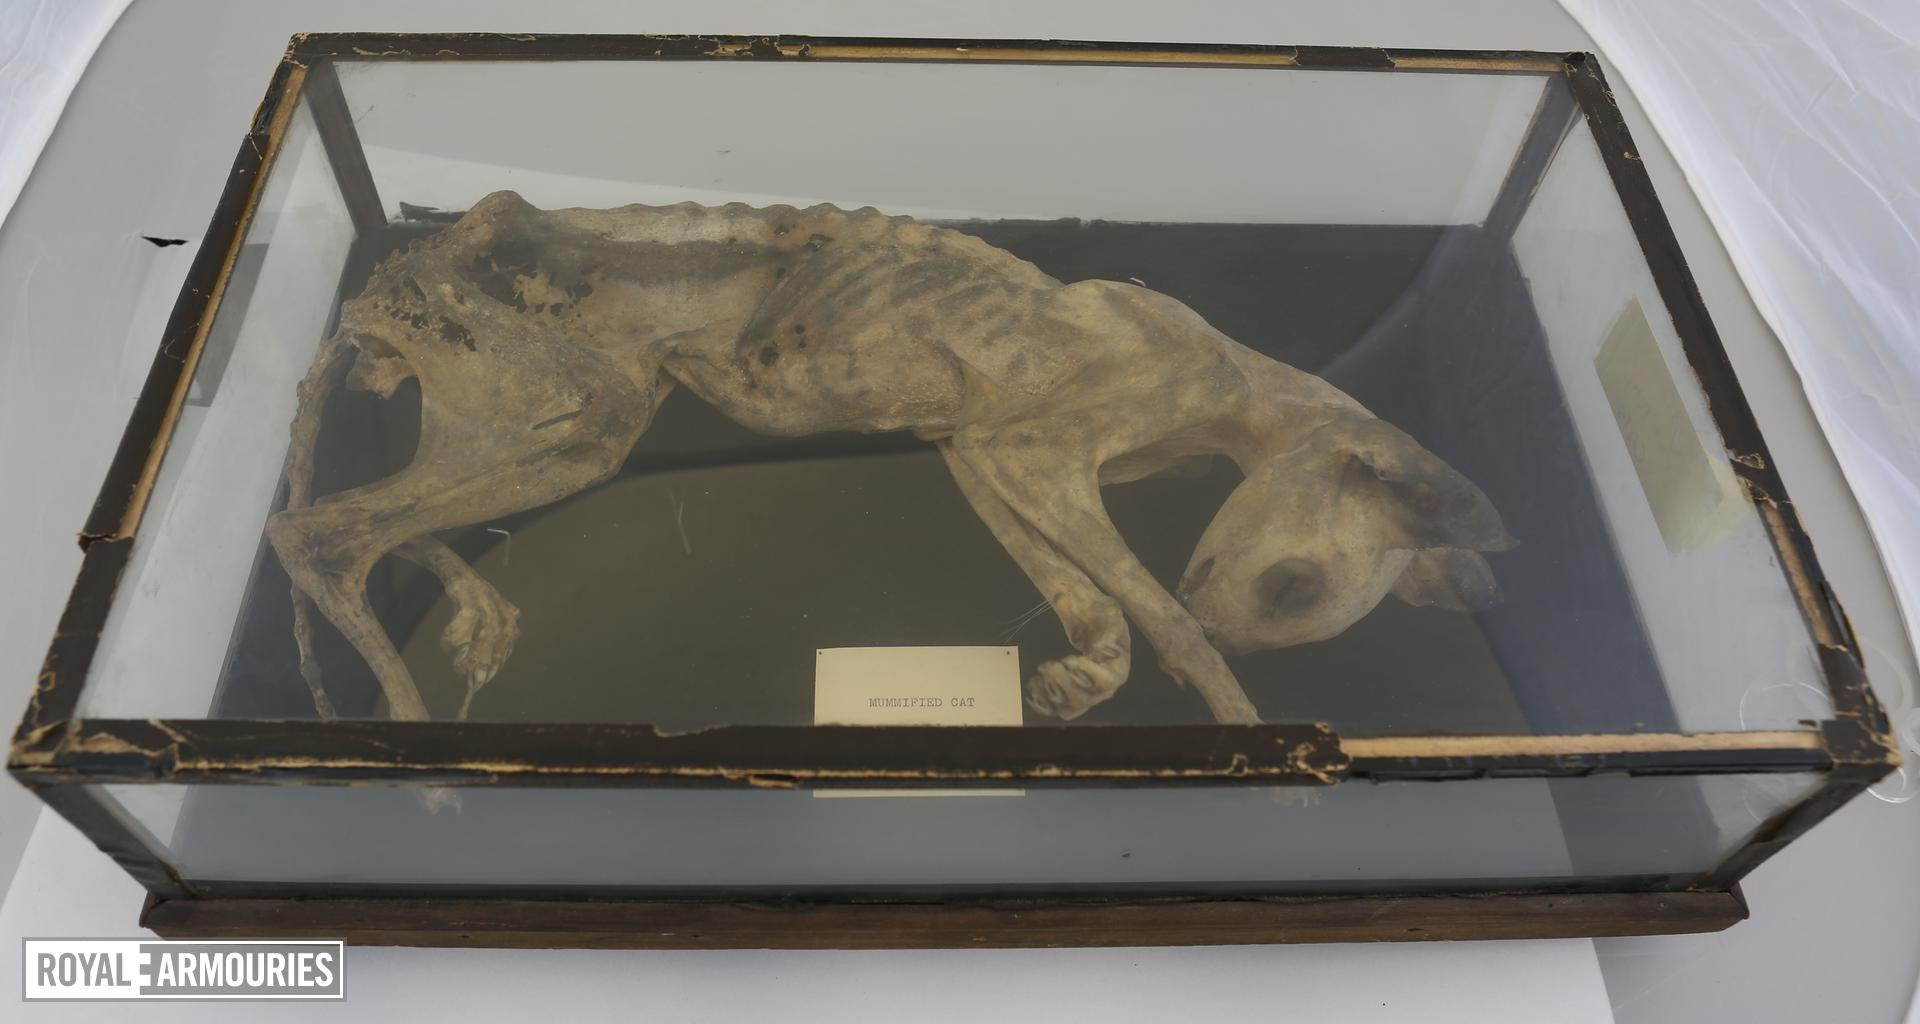 Mummified cat. XVIII.897